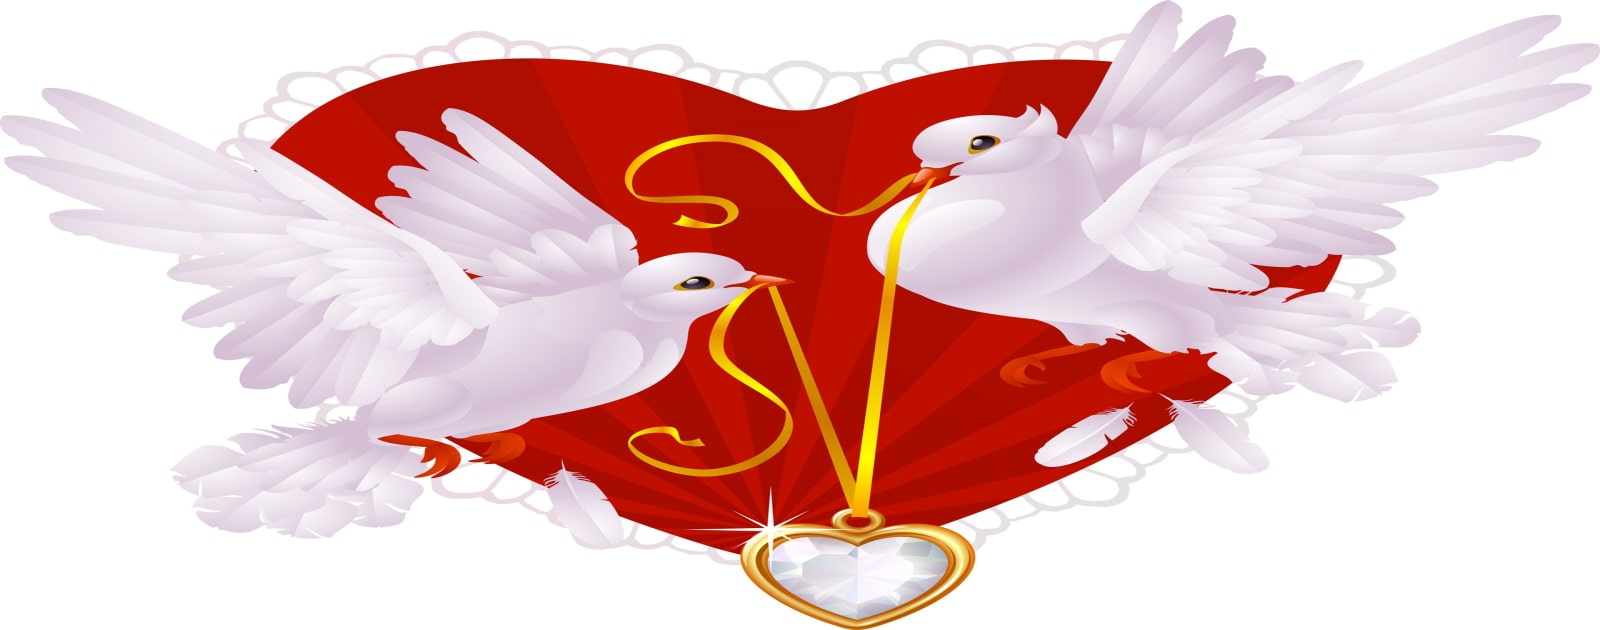 valentine 's day birds symbol